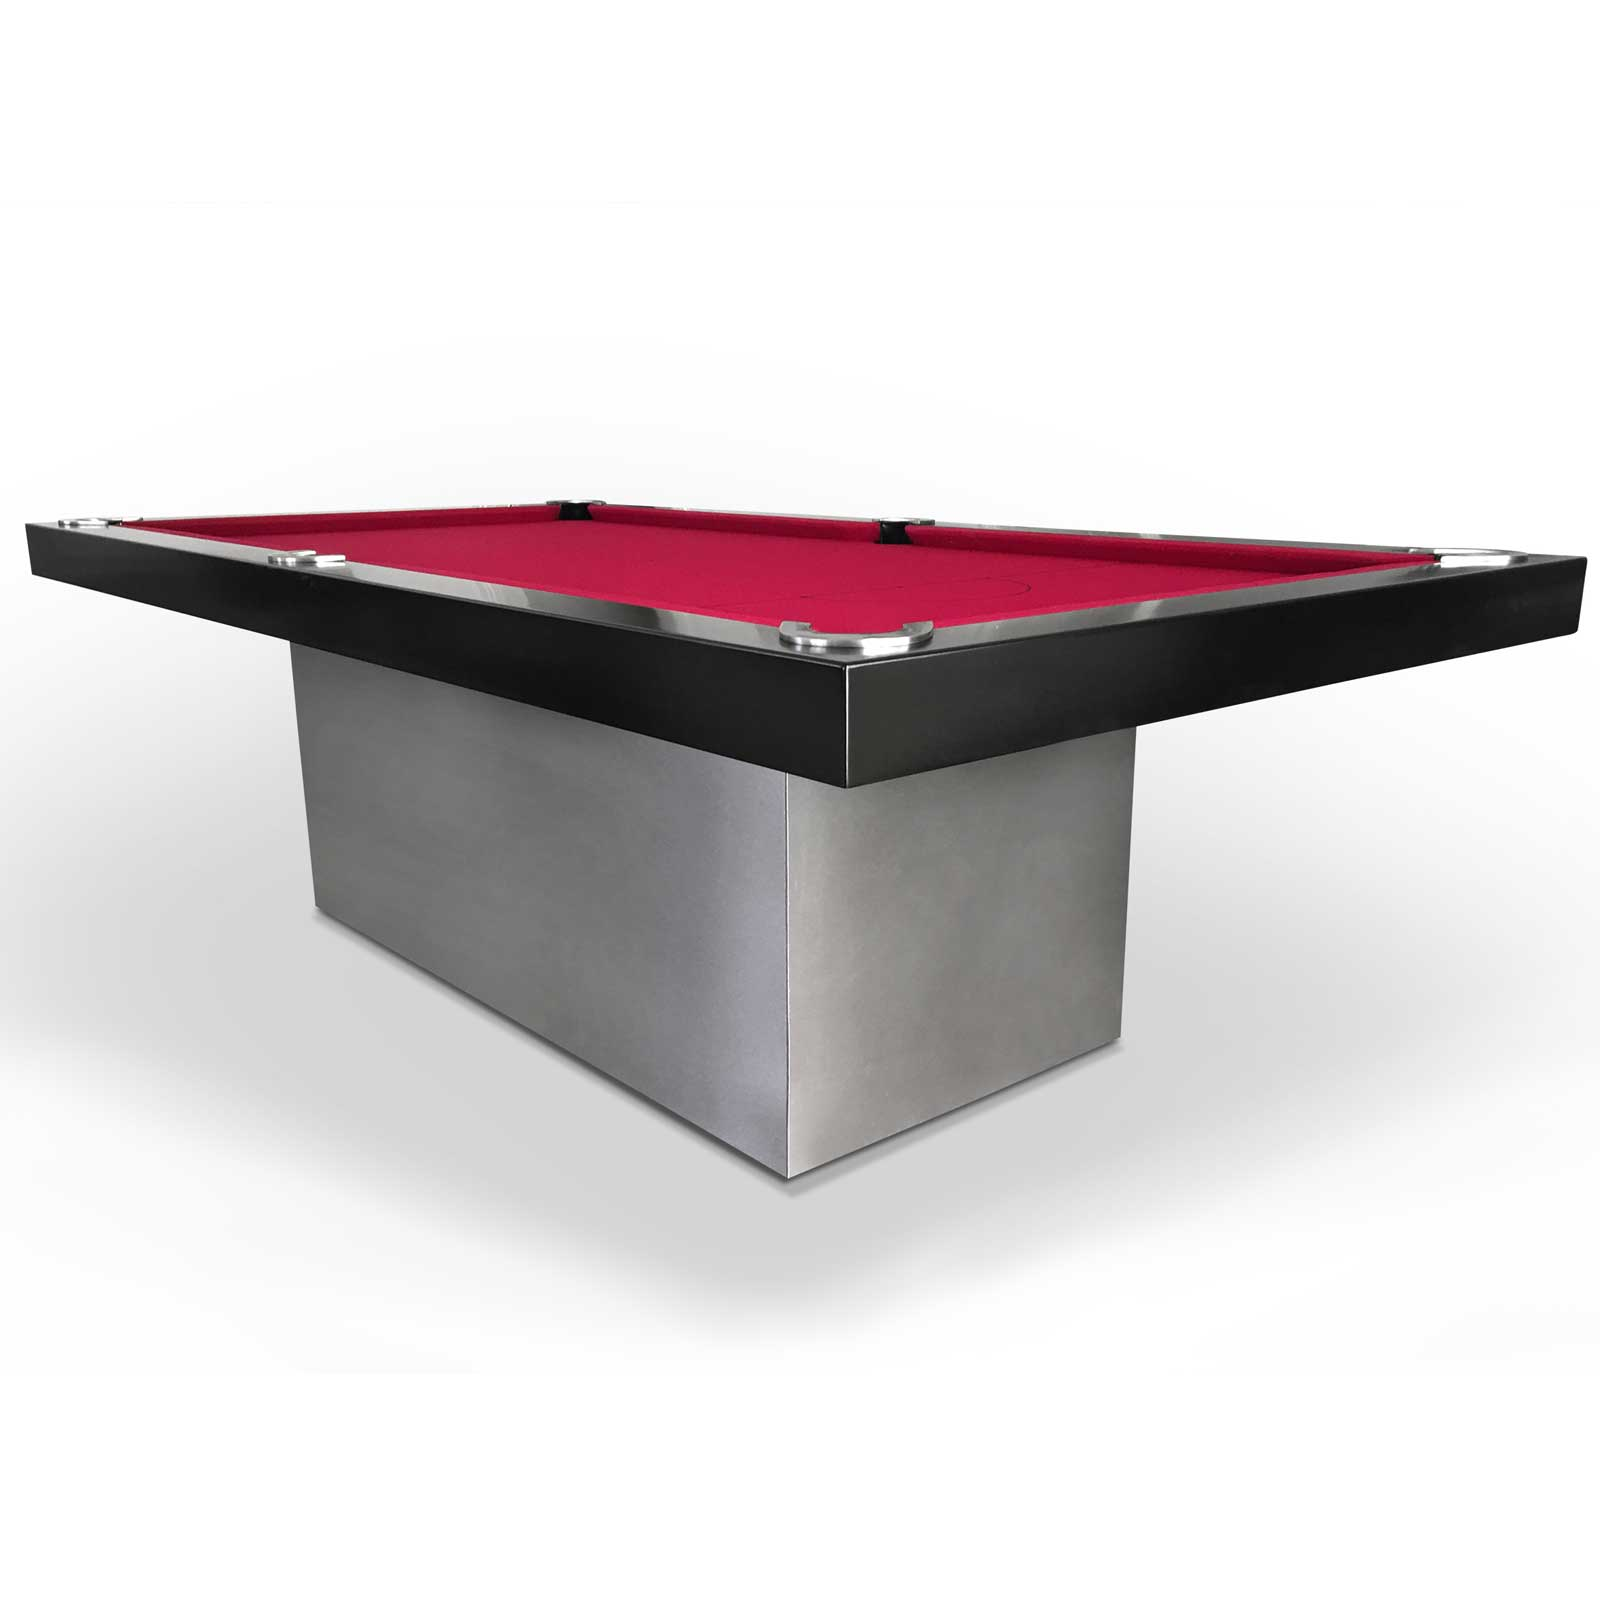 9 Foot Slate Cube Pool Billiards Table